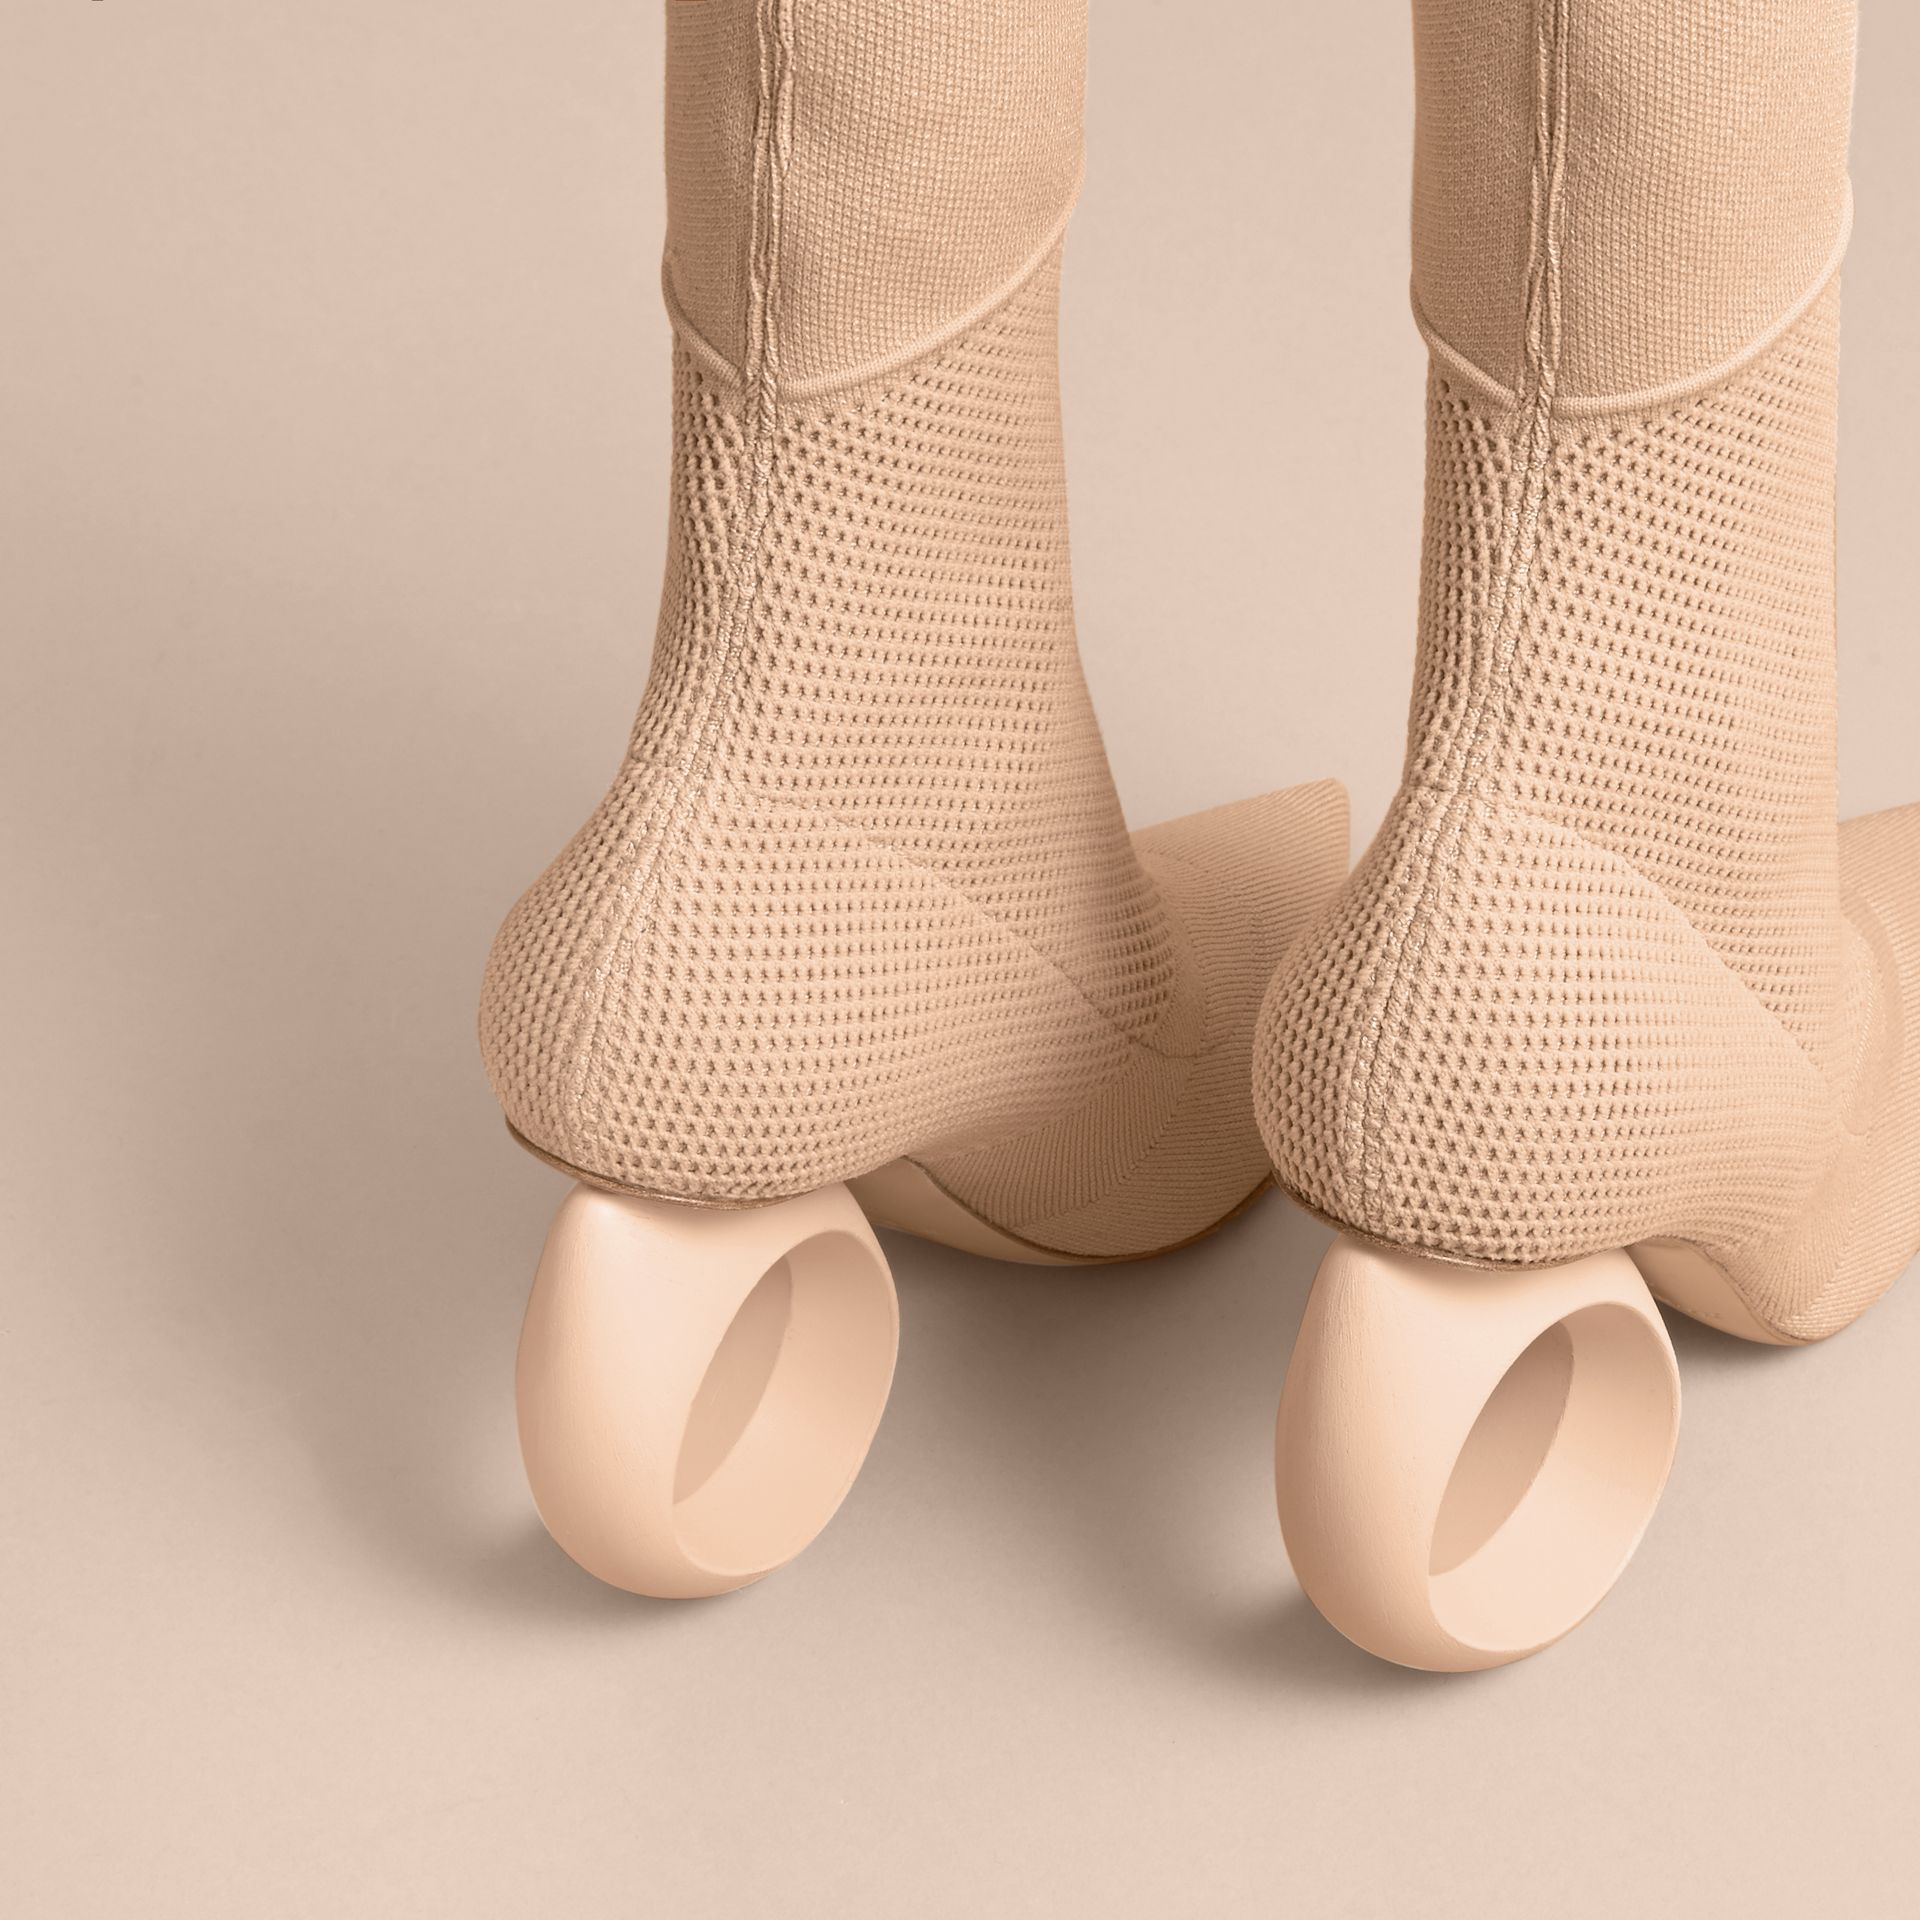 Mid-calf Knitted Boots with Sculpted Heel in Nude - Women | Burberry - gallery image 5